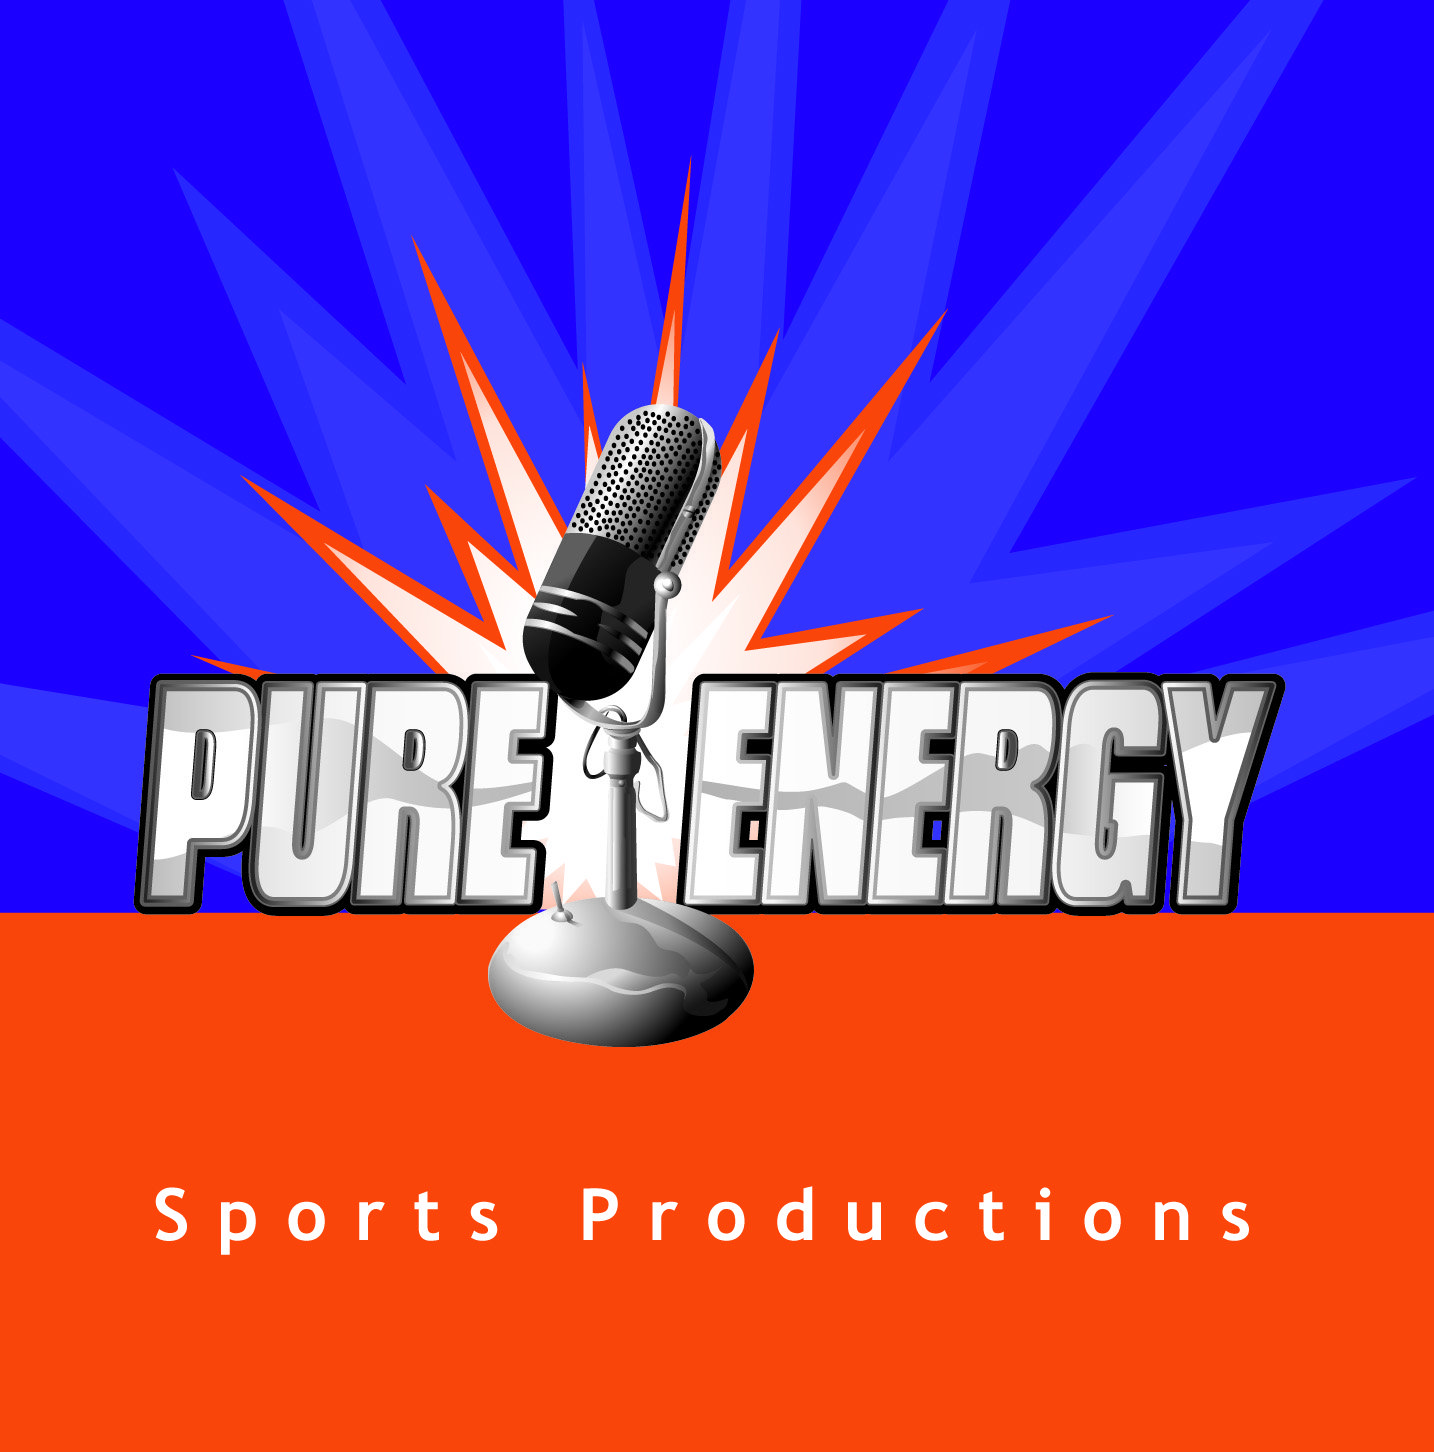 Pure Energy Sports Production